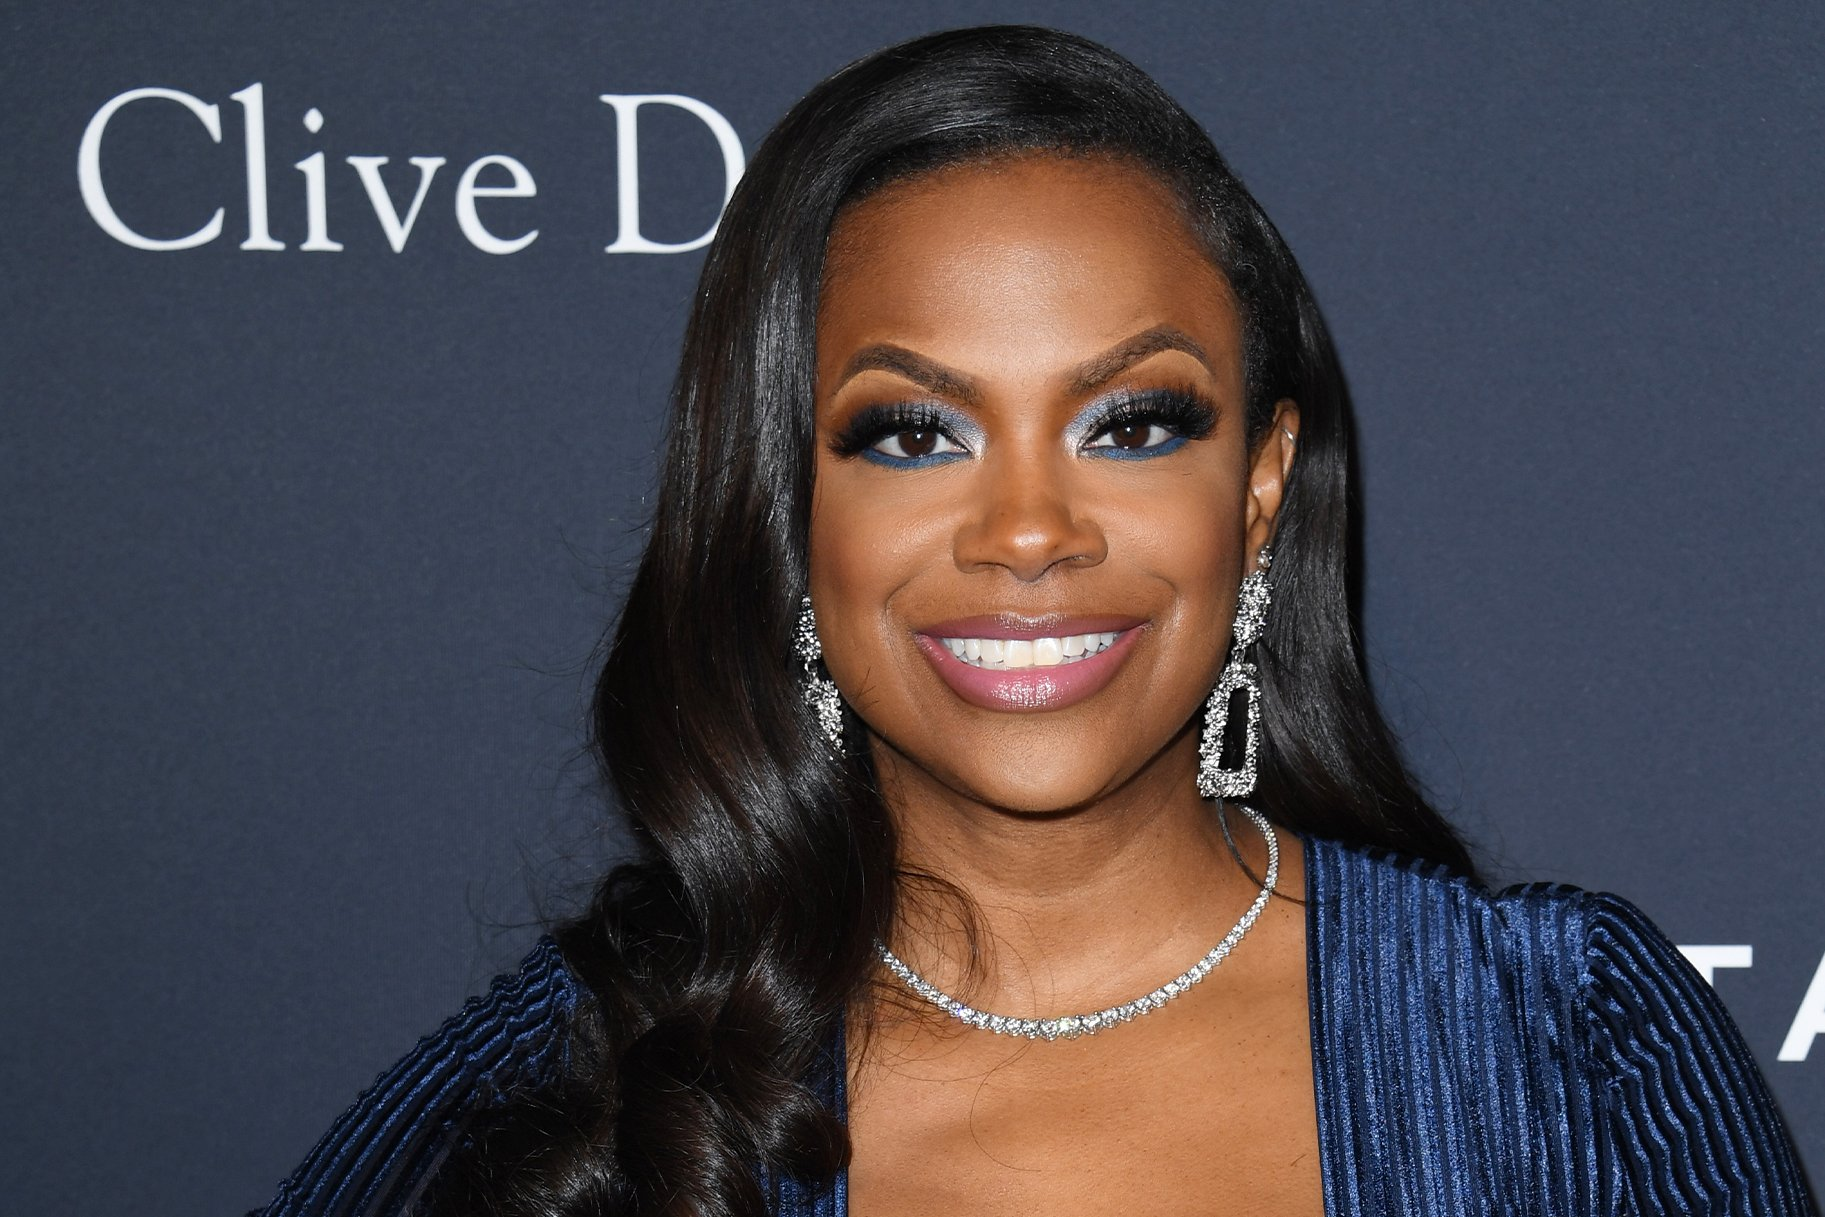 Kandi Burruss Fans Are Having A Blast Seeing Her Faces